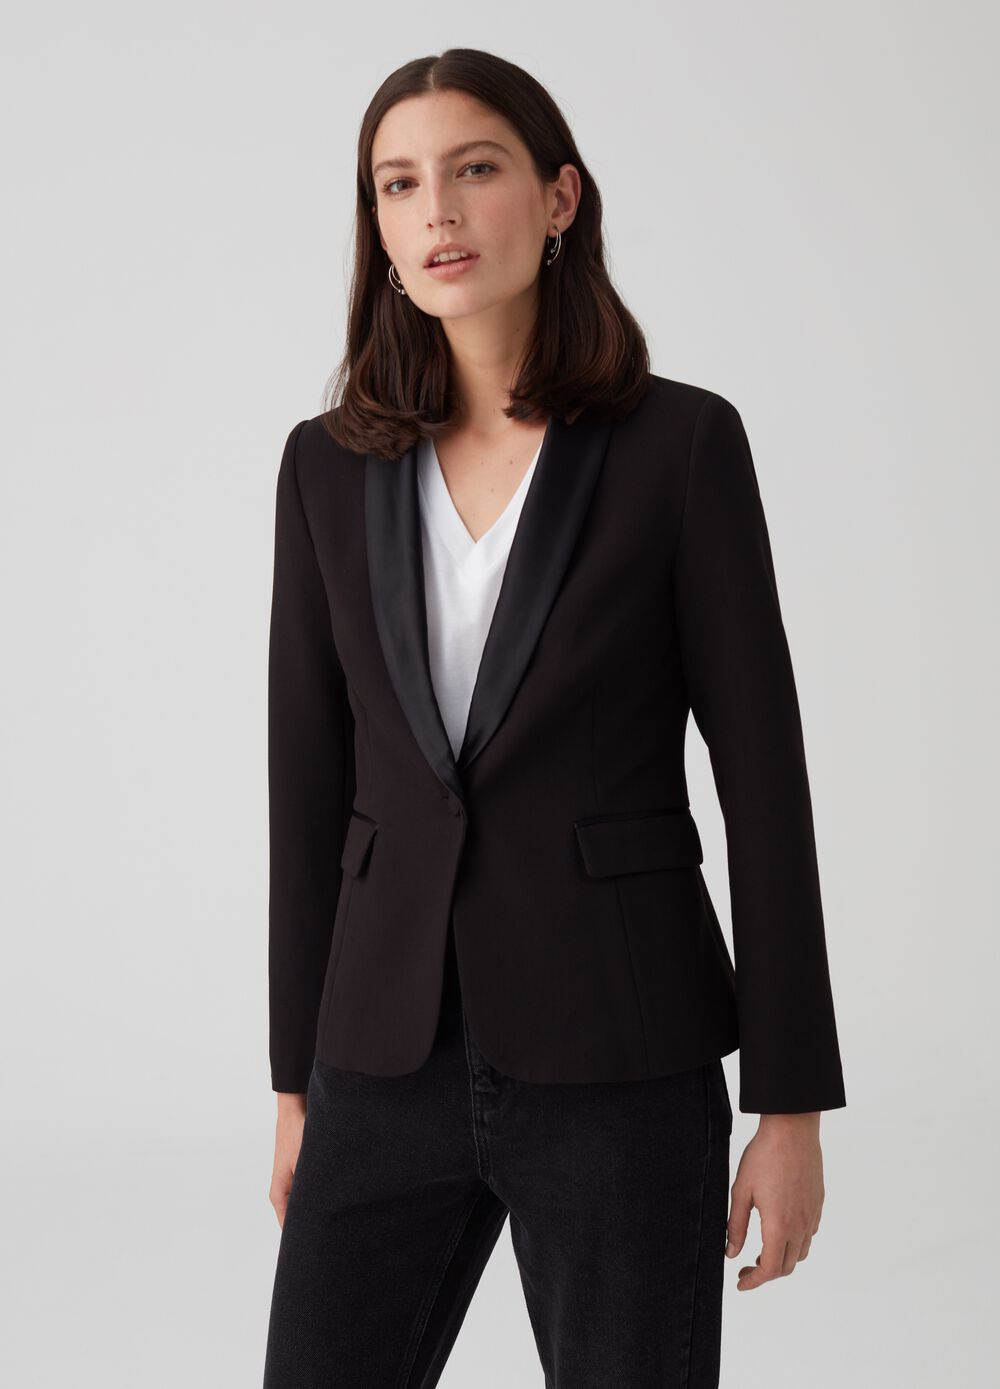 One-button jacket with pockets